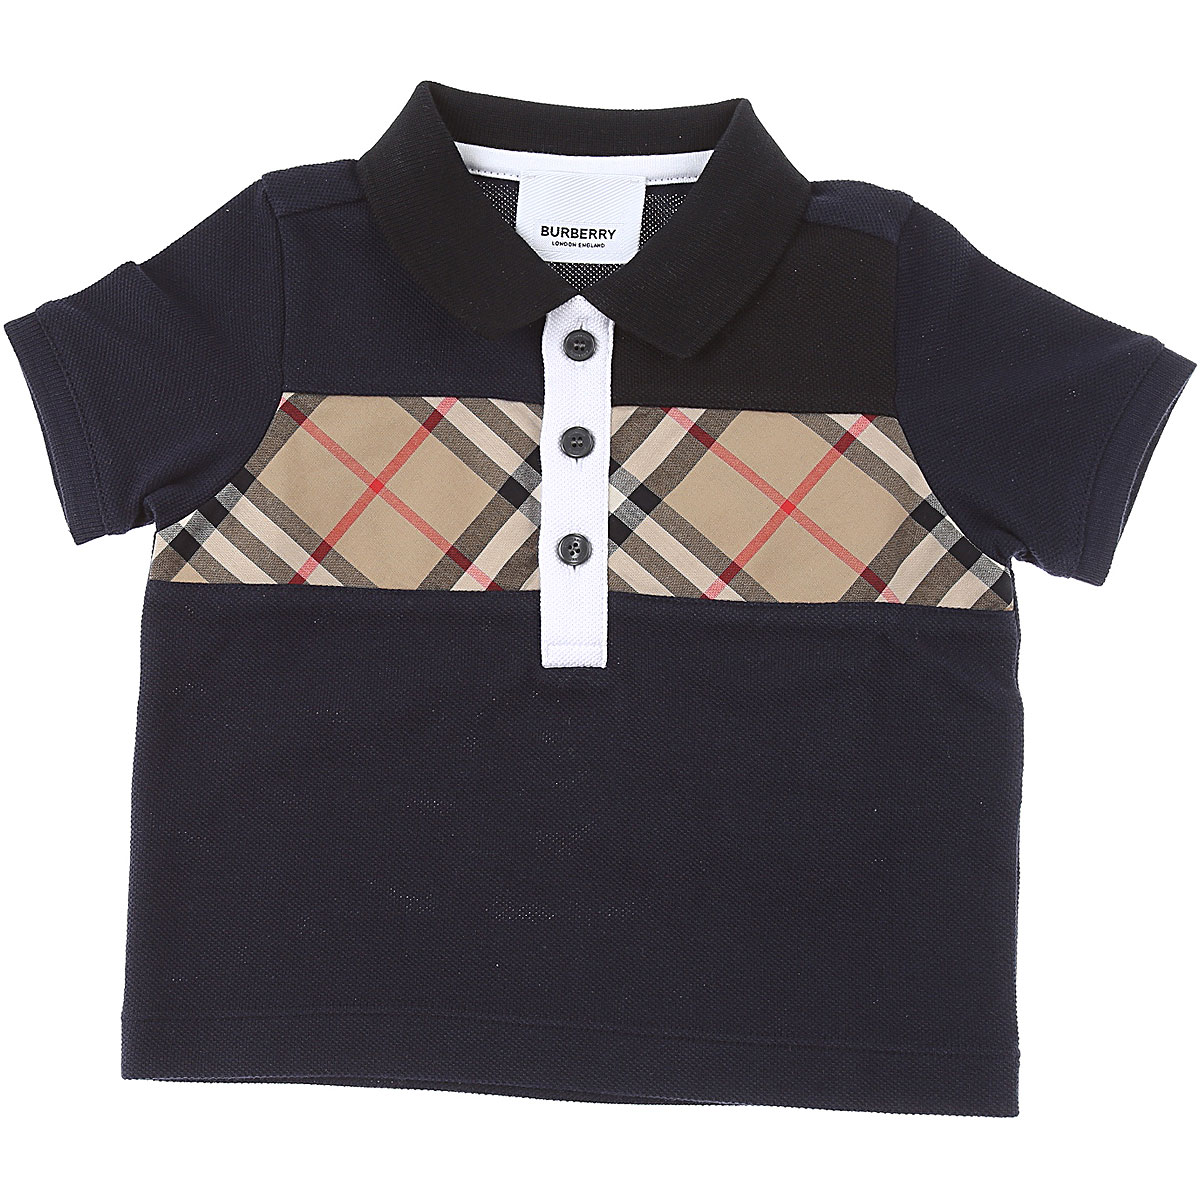 Burberry Baby Polo Shirt for Boys, Black, Cotton, 2019, 12 M 18M 2Y